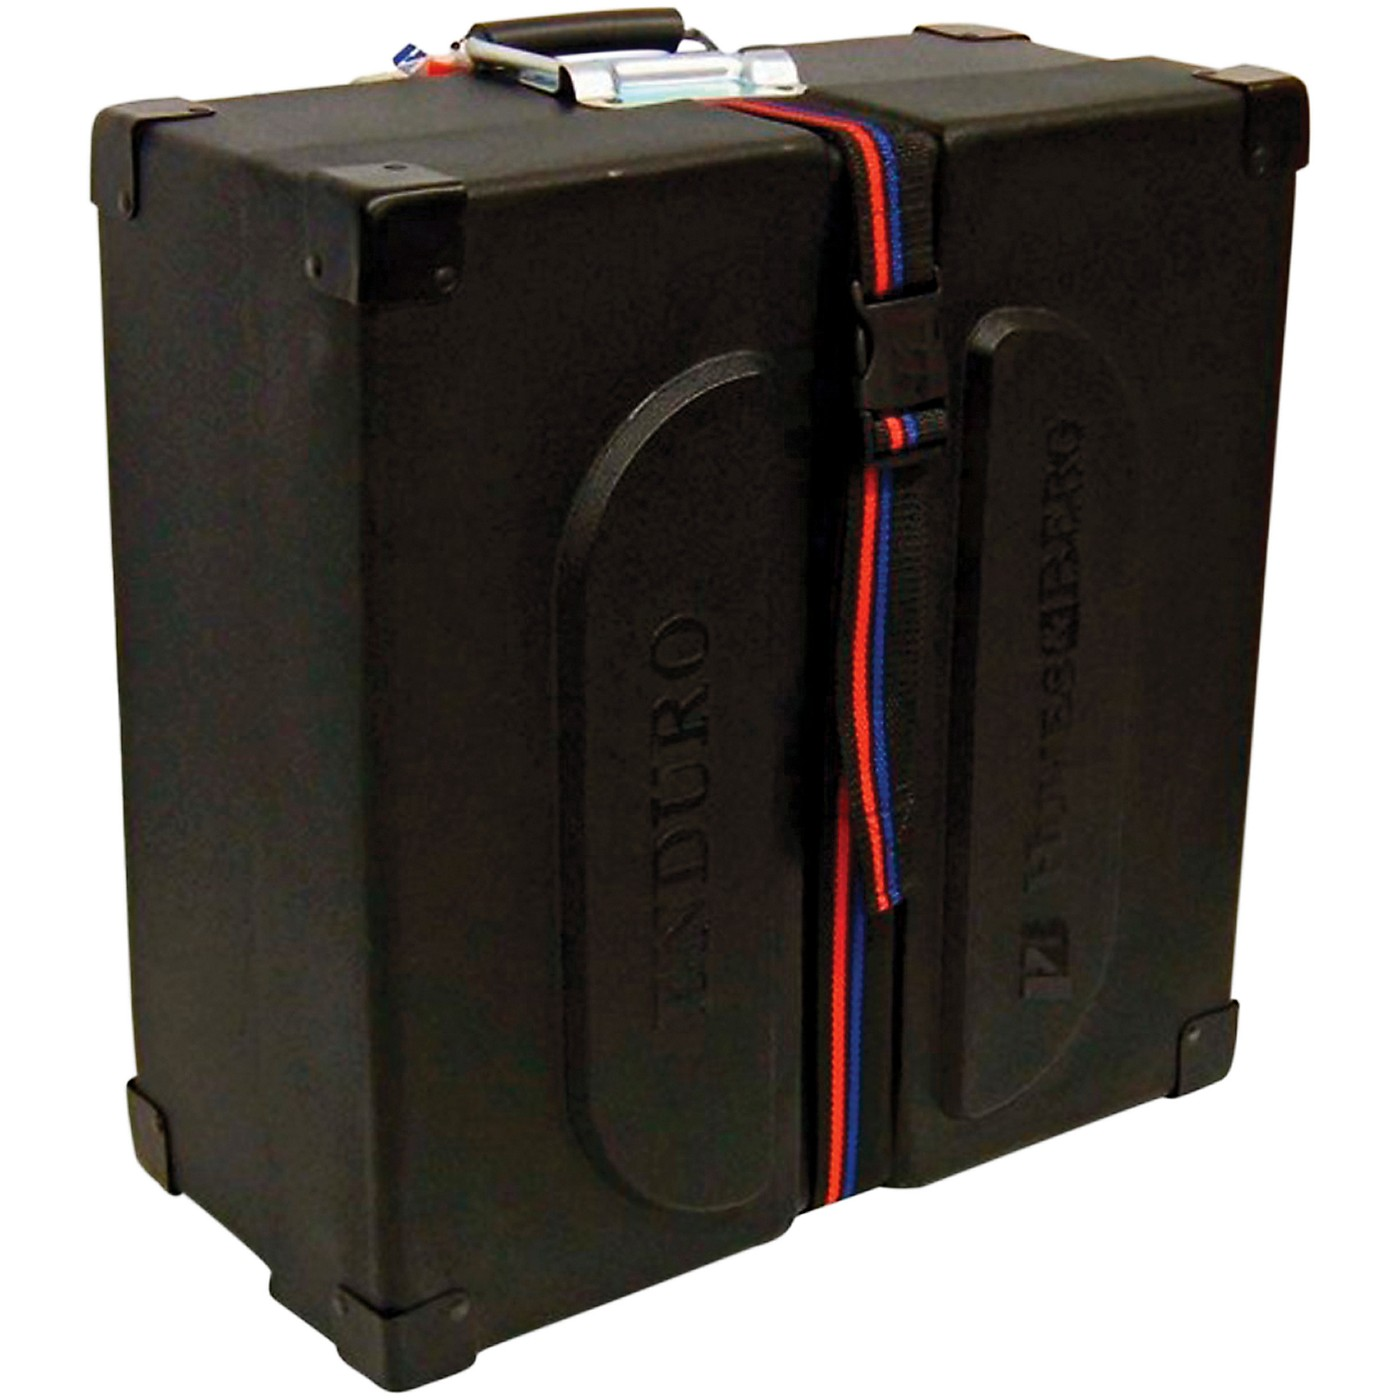 Humes & Berg Enduro Extended Snare Drum Case thumbnail